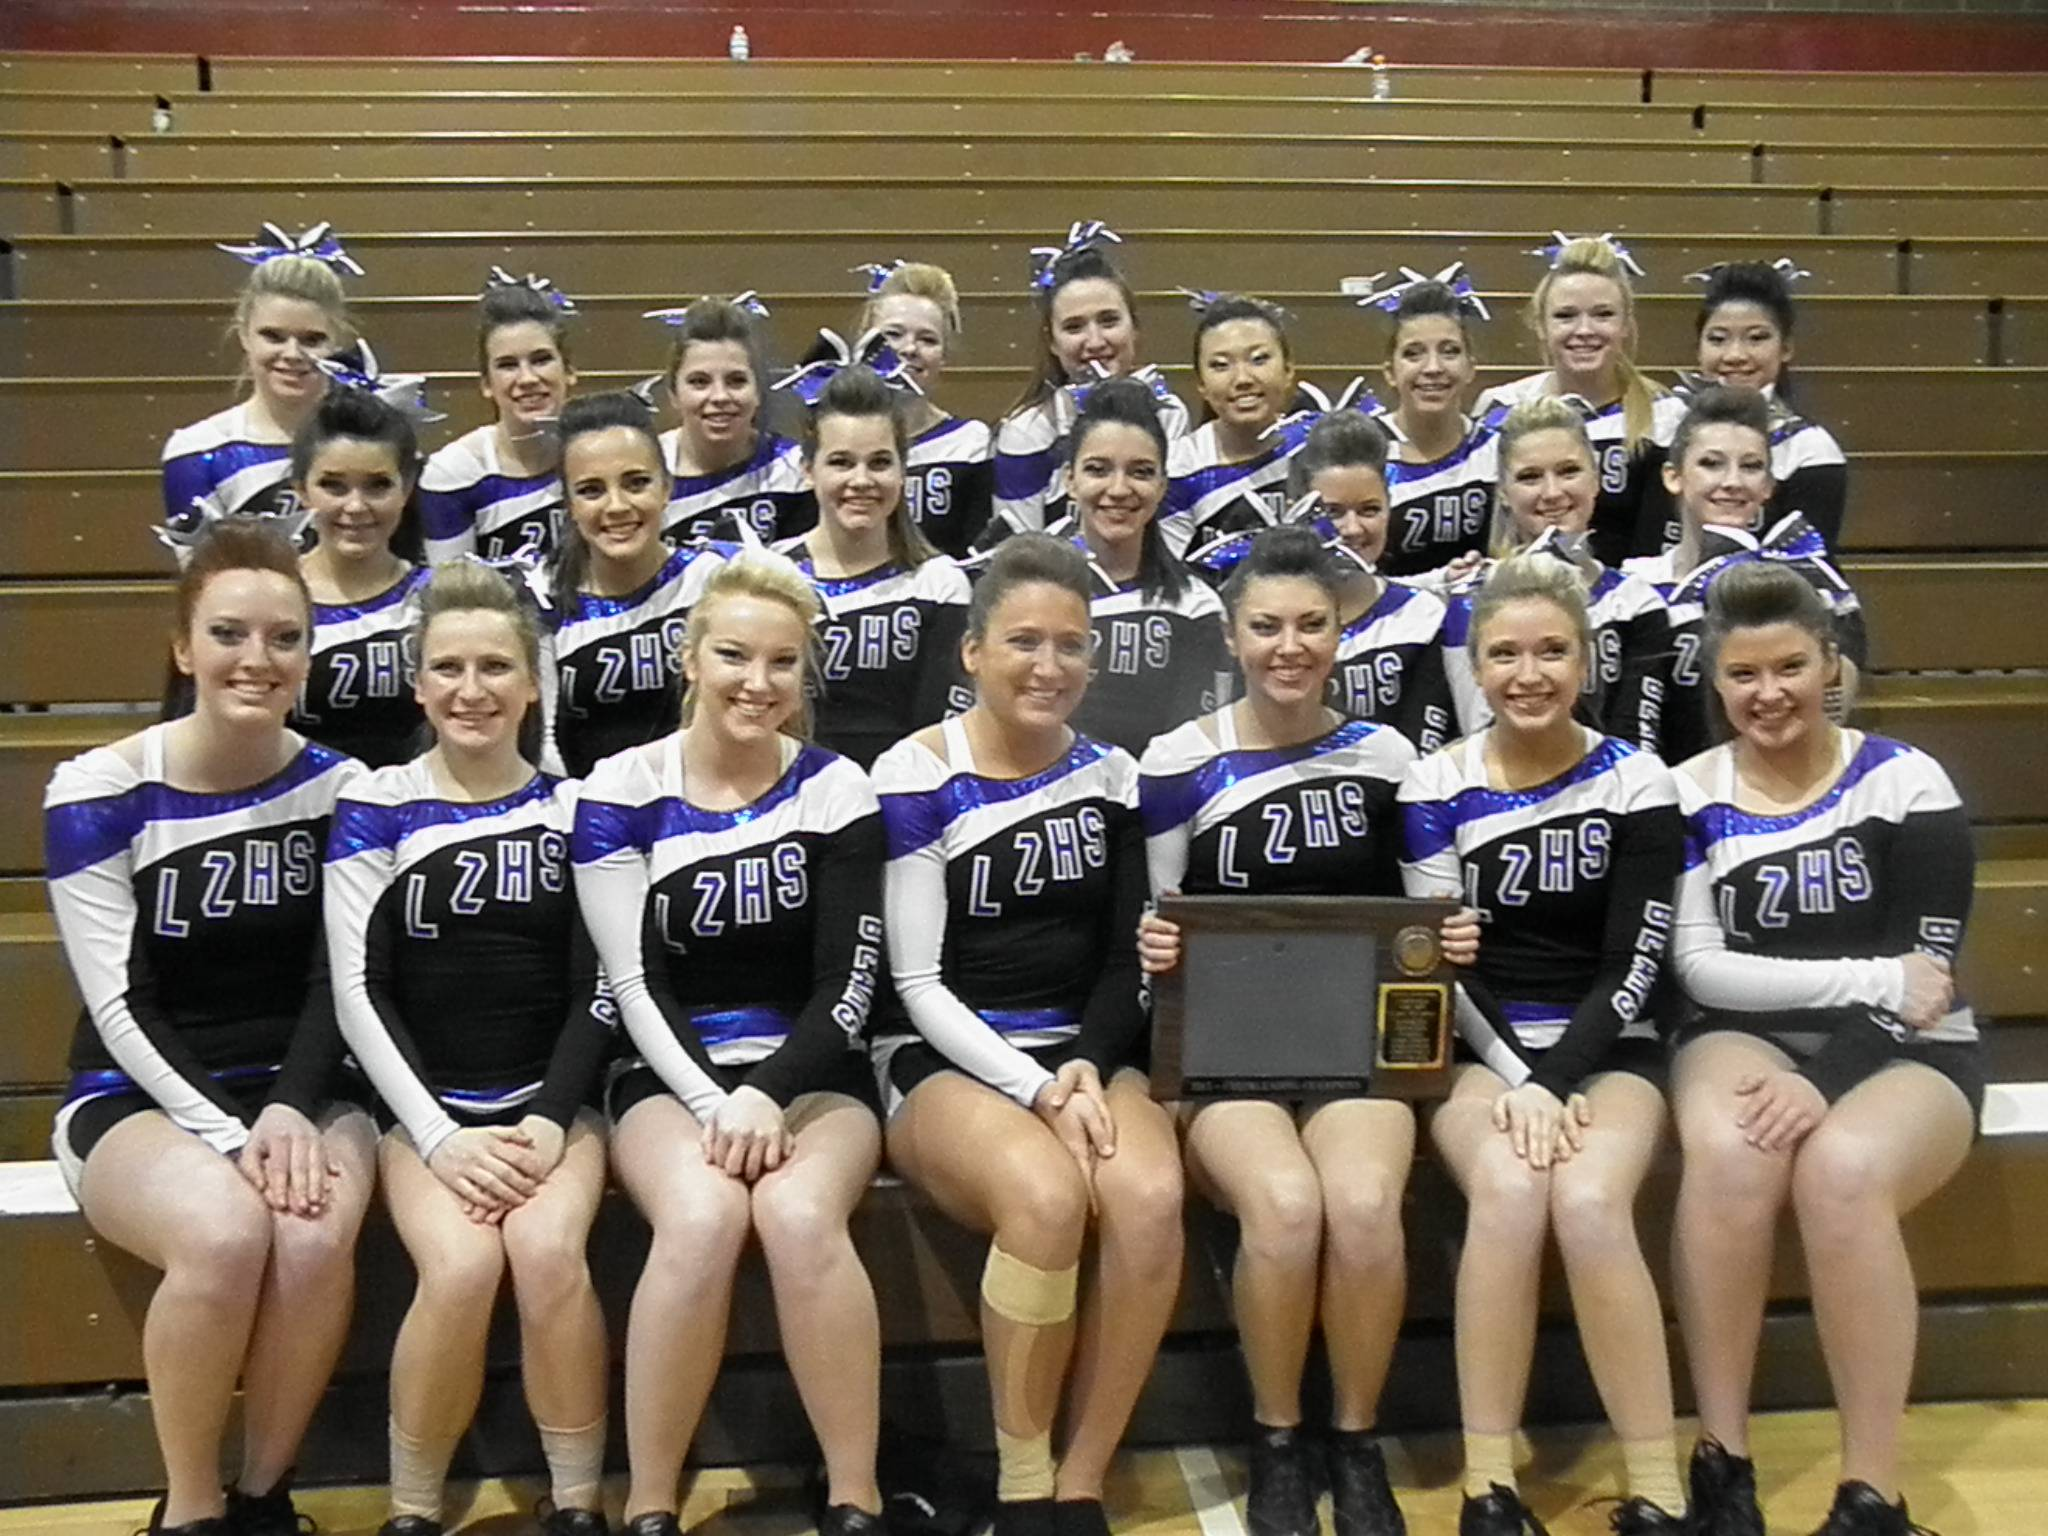 The Cheering Bears with their Lakes Division North Suburban Conference trophy on Jan. 20, 2013.